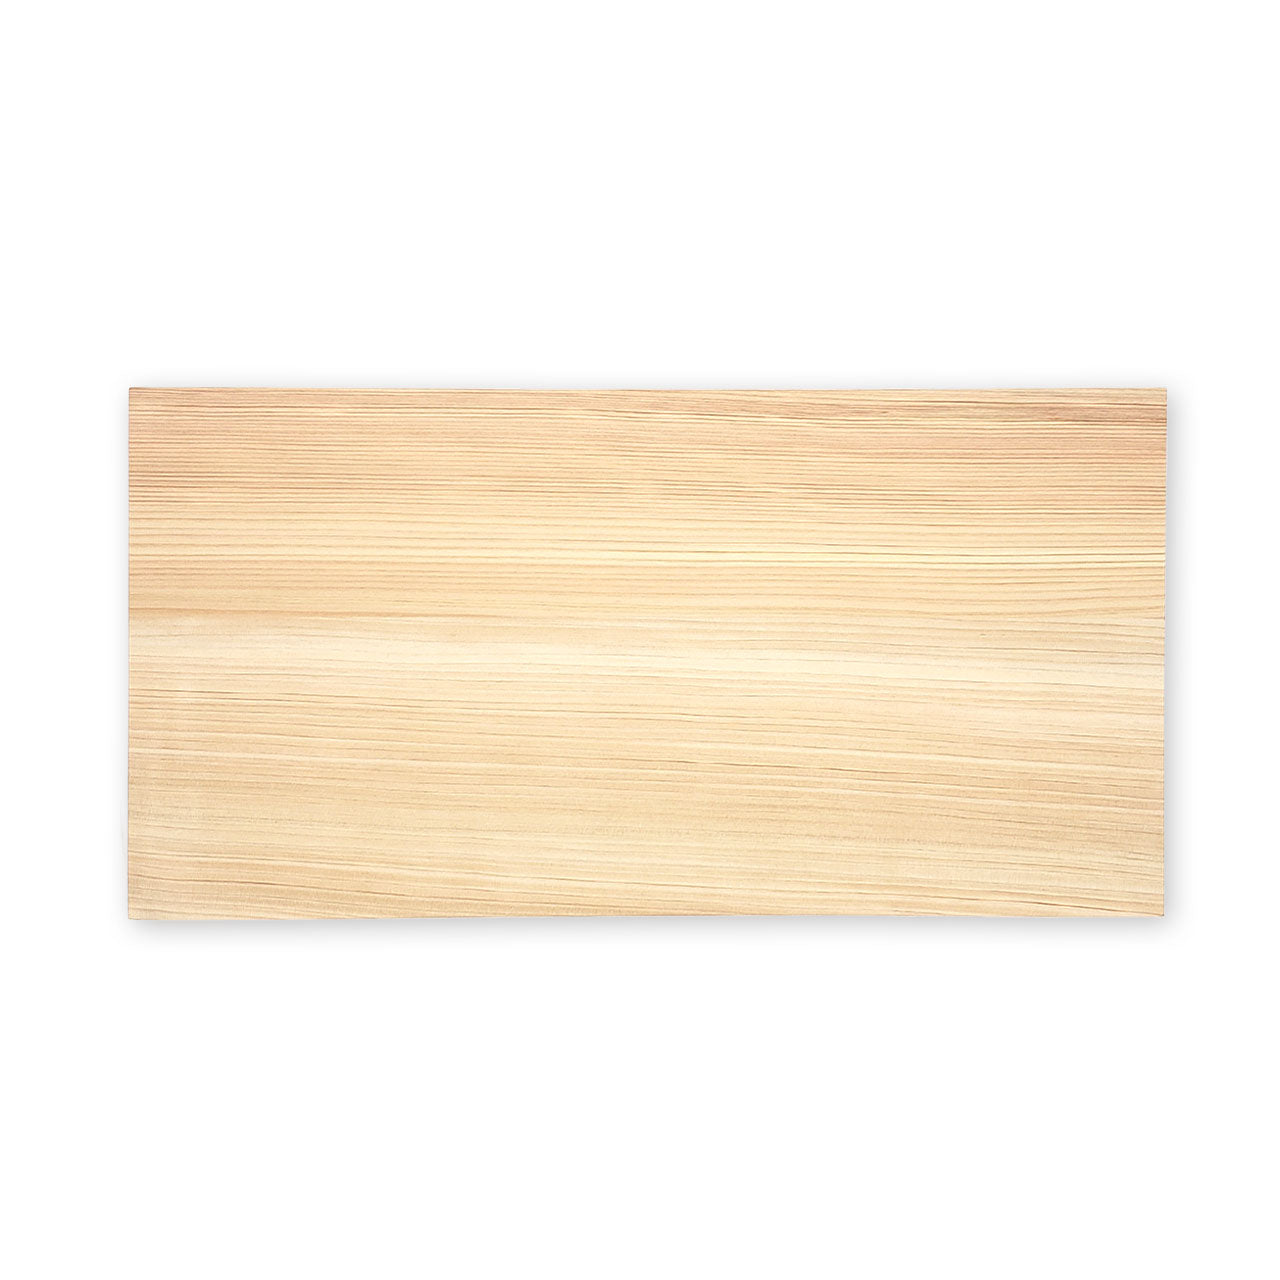 "[NEW] Hinoki (Japanese Cypress) Cutting Board 16.5"" x 8.25"" x 1.6"" ht"